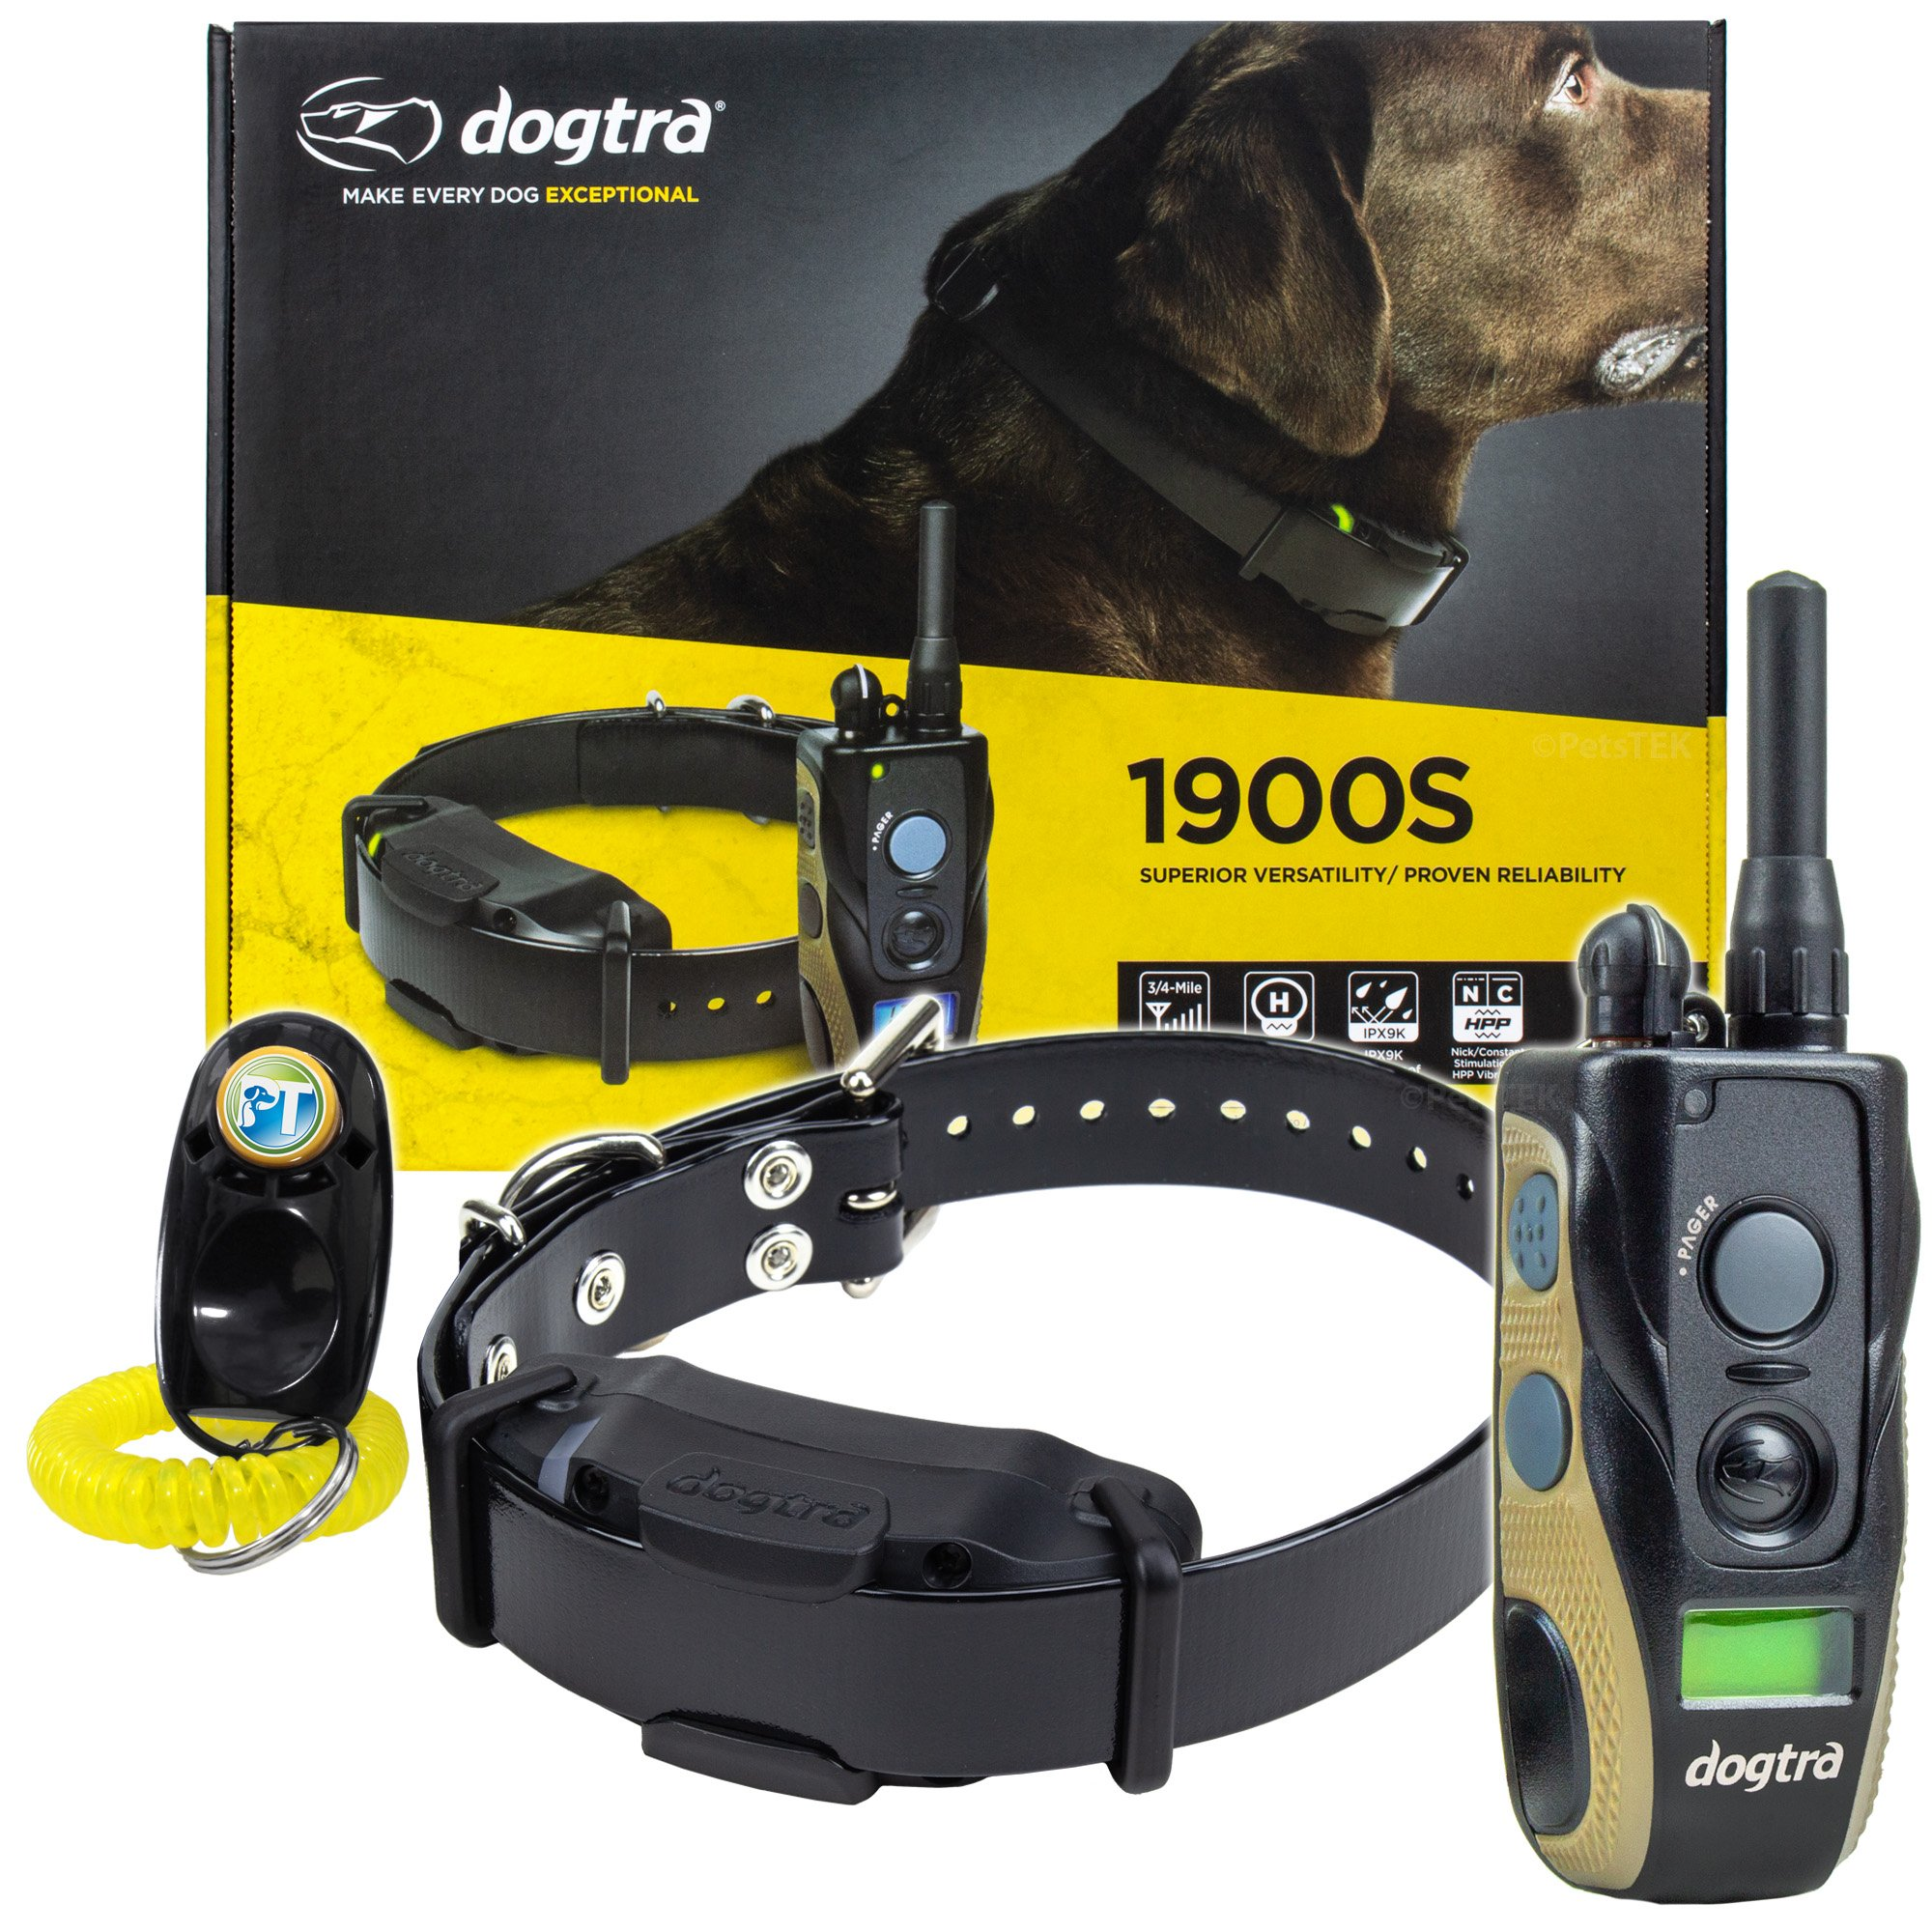 Dogtra 1900S Remote Training Collar - 3/4 Mile Range, Waterproof, Rechargeable, Shock, Vibration - includes PetsTEK Dog Training Clicker by Dogtra